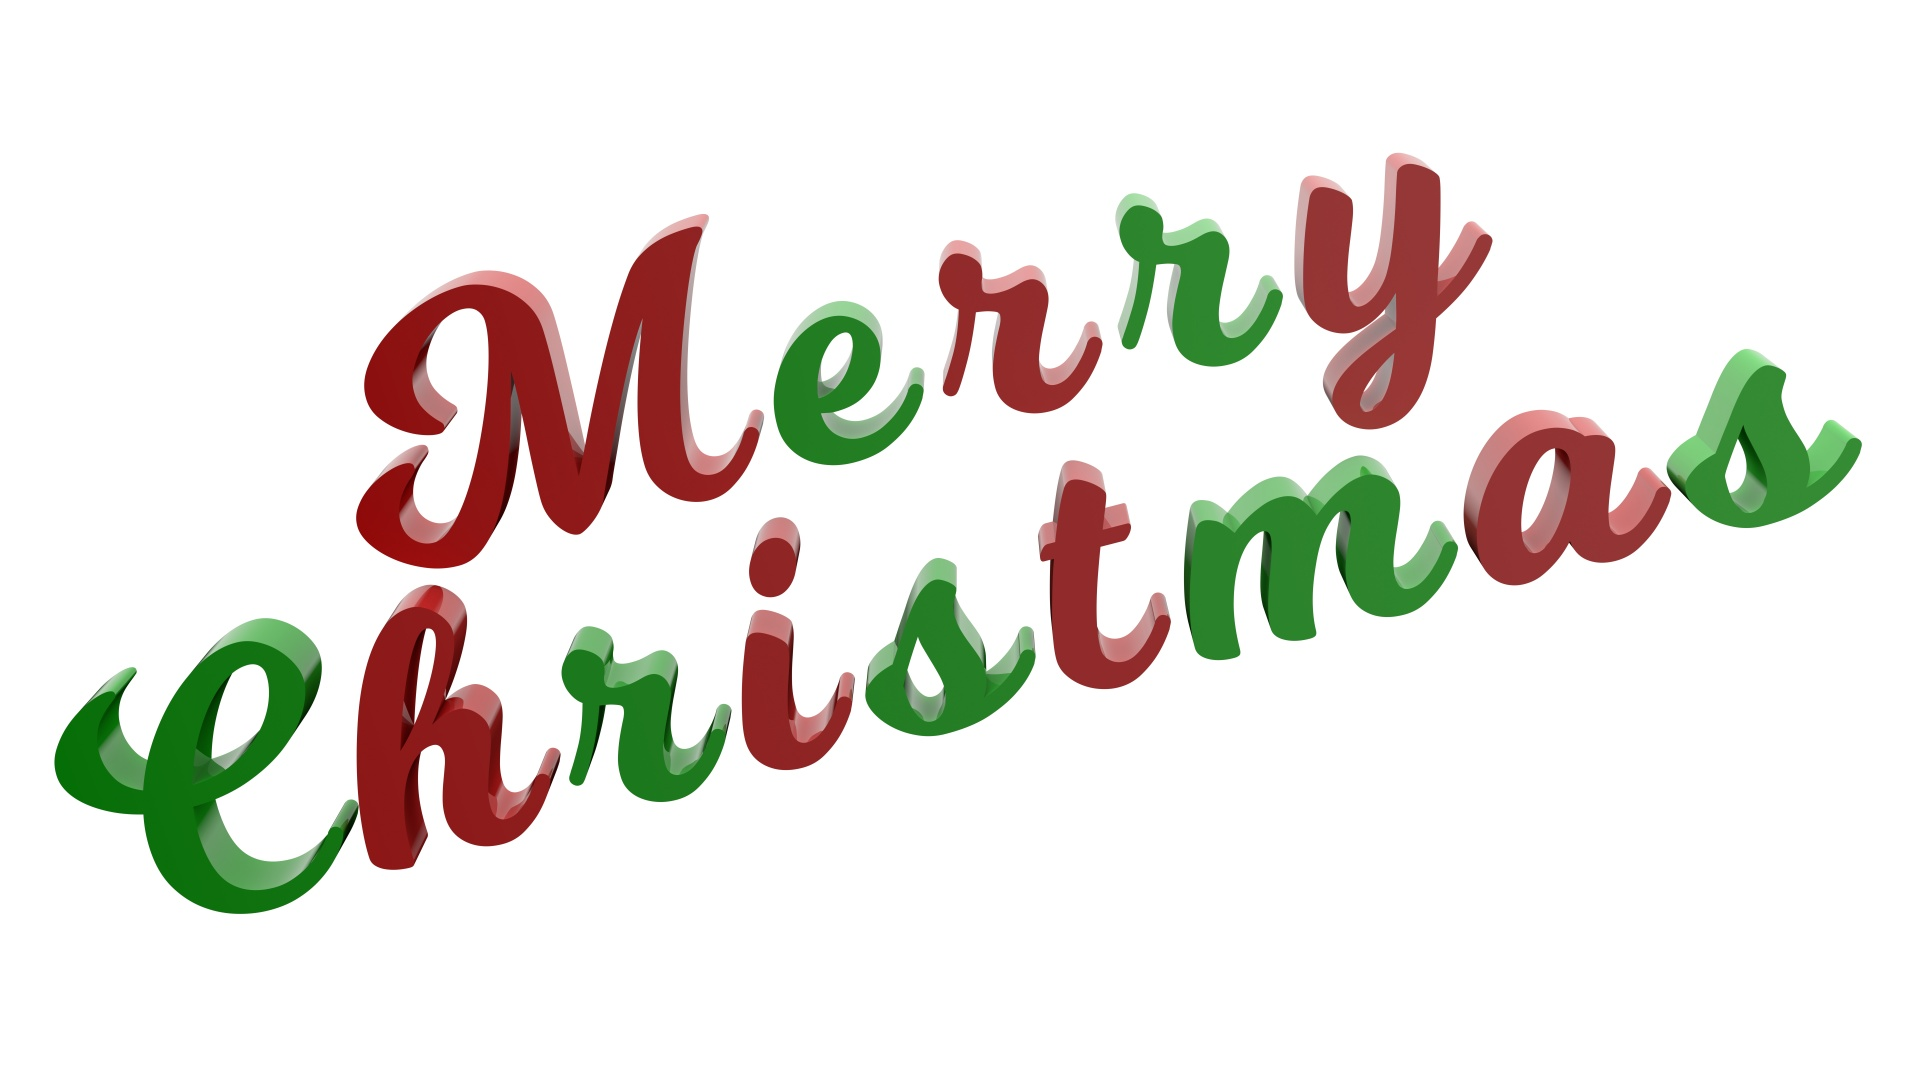 merry-christmas-red-green-text_Public Domain.jpg